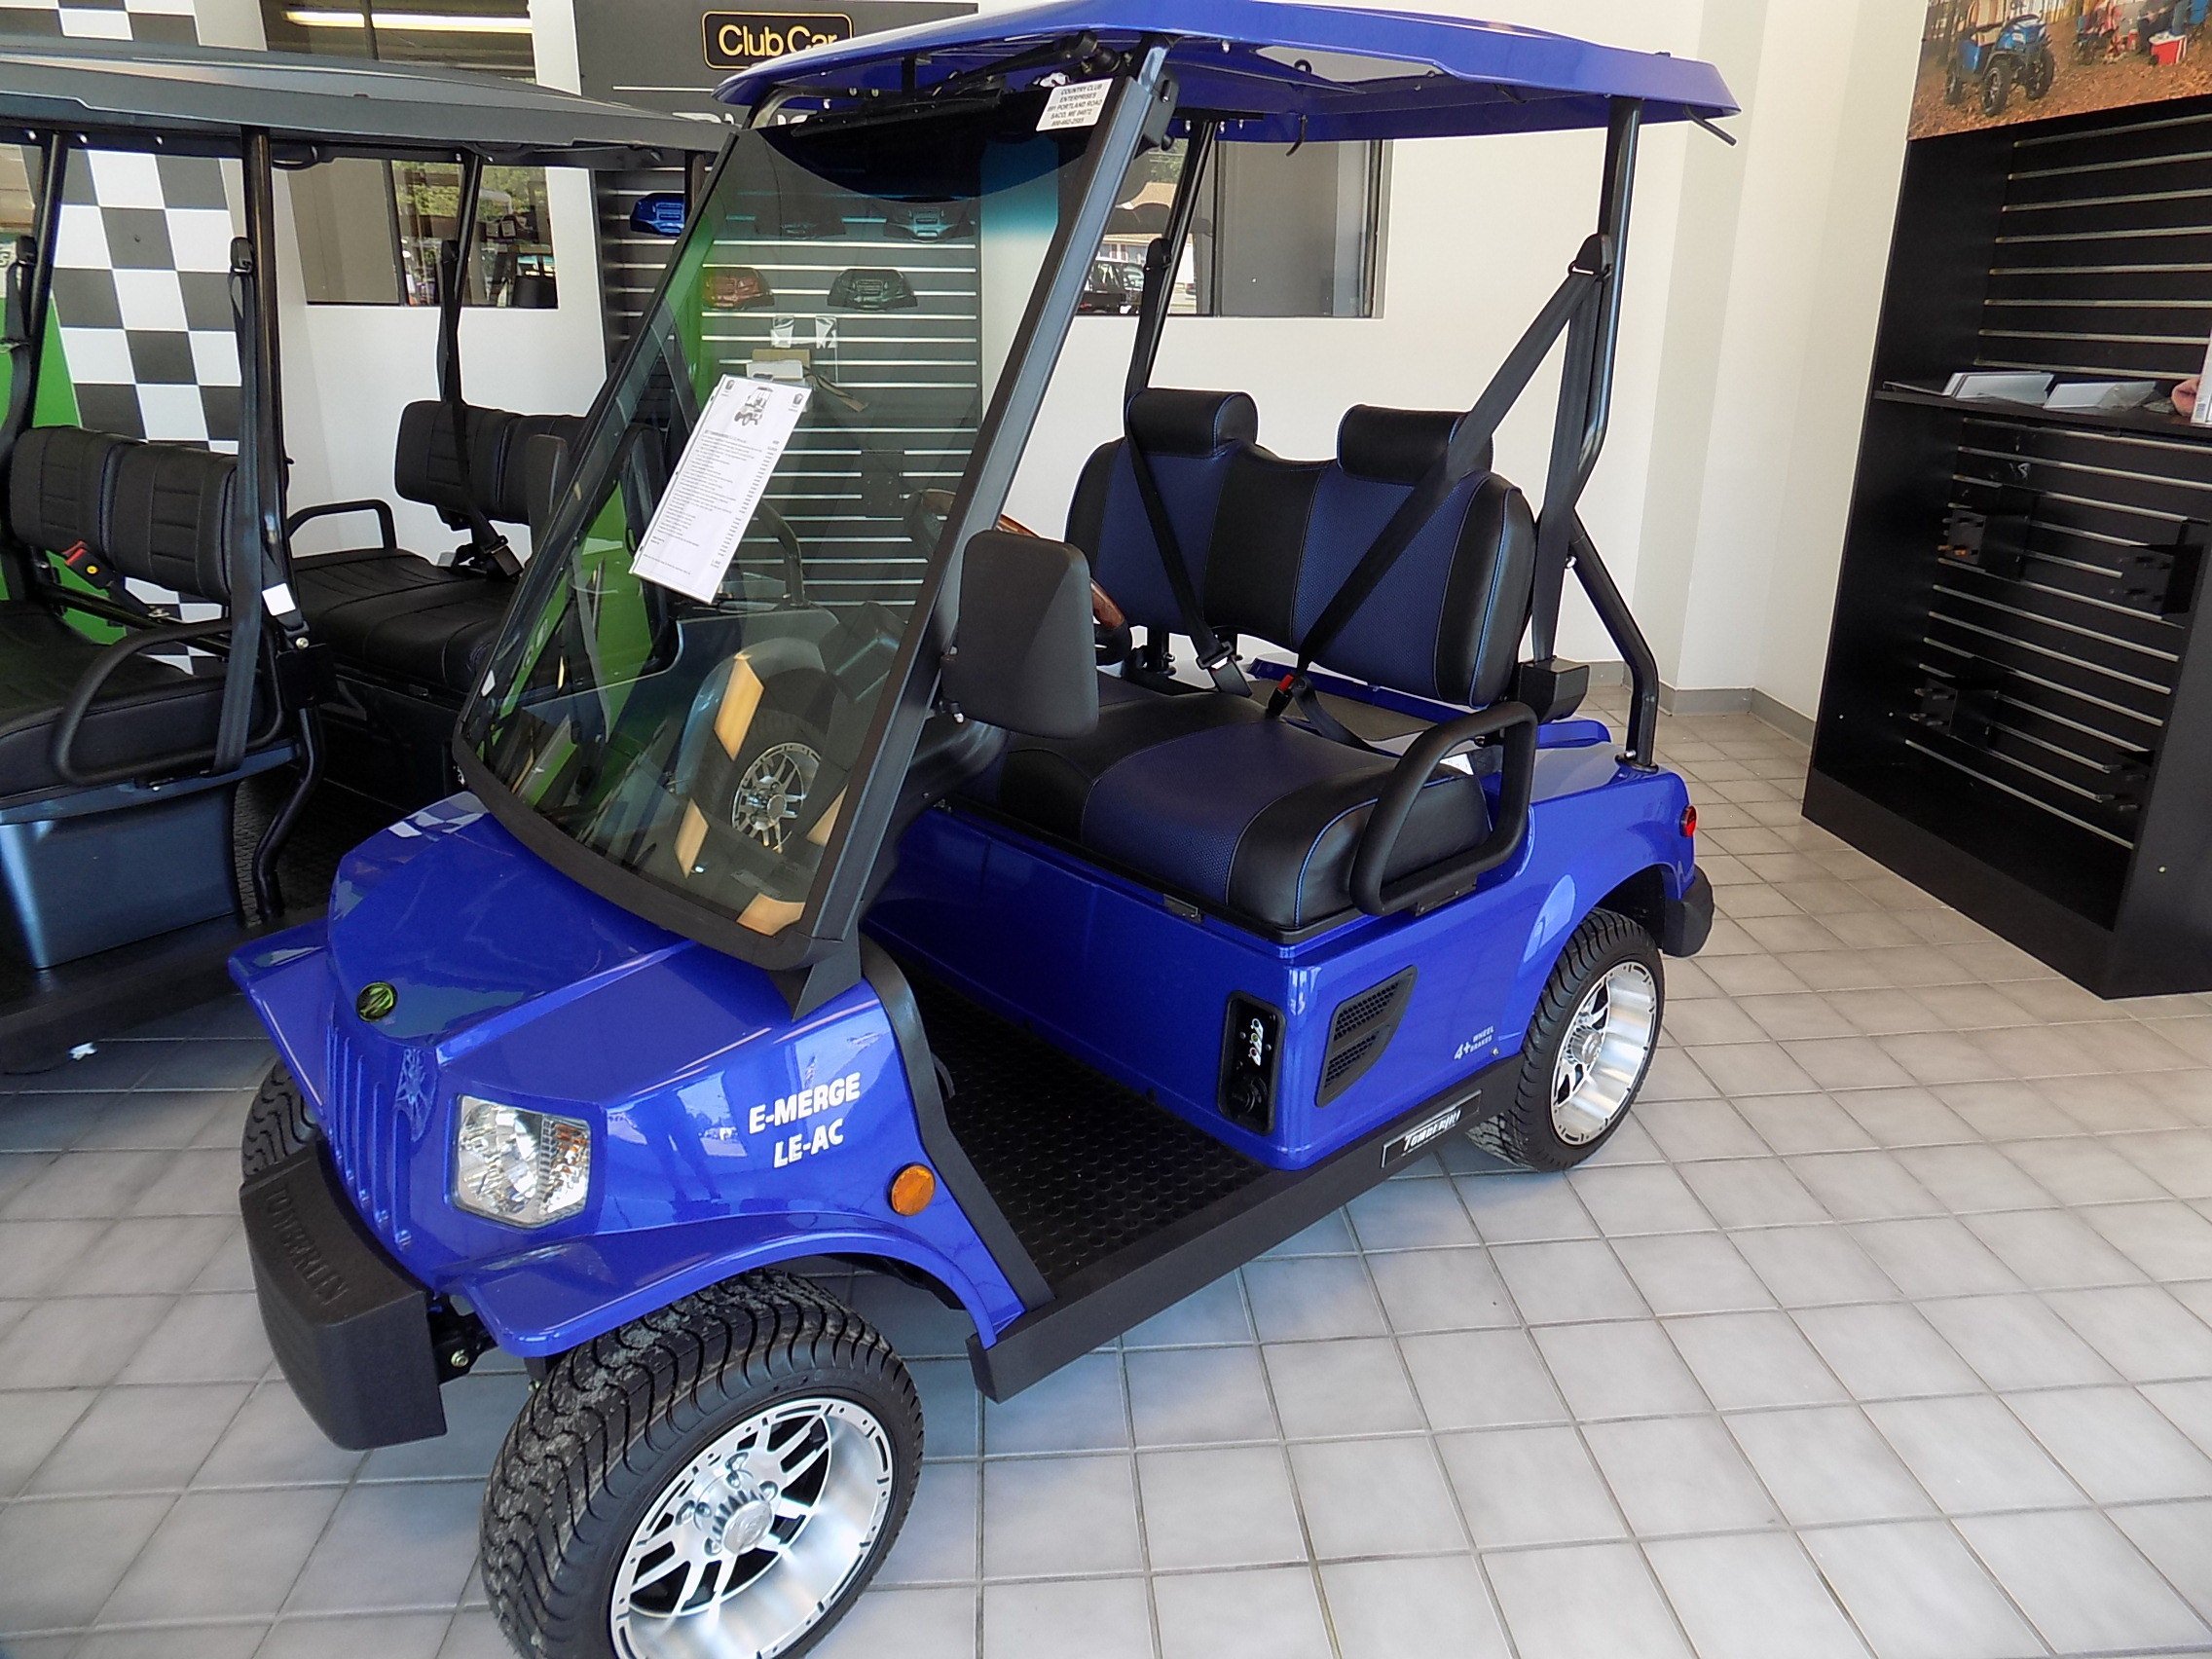 small resolution of new 2017 street legal tomberlin emerge e2 le lsv with full new car warranty cce golf cars